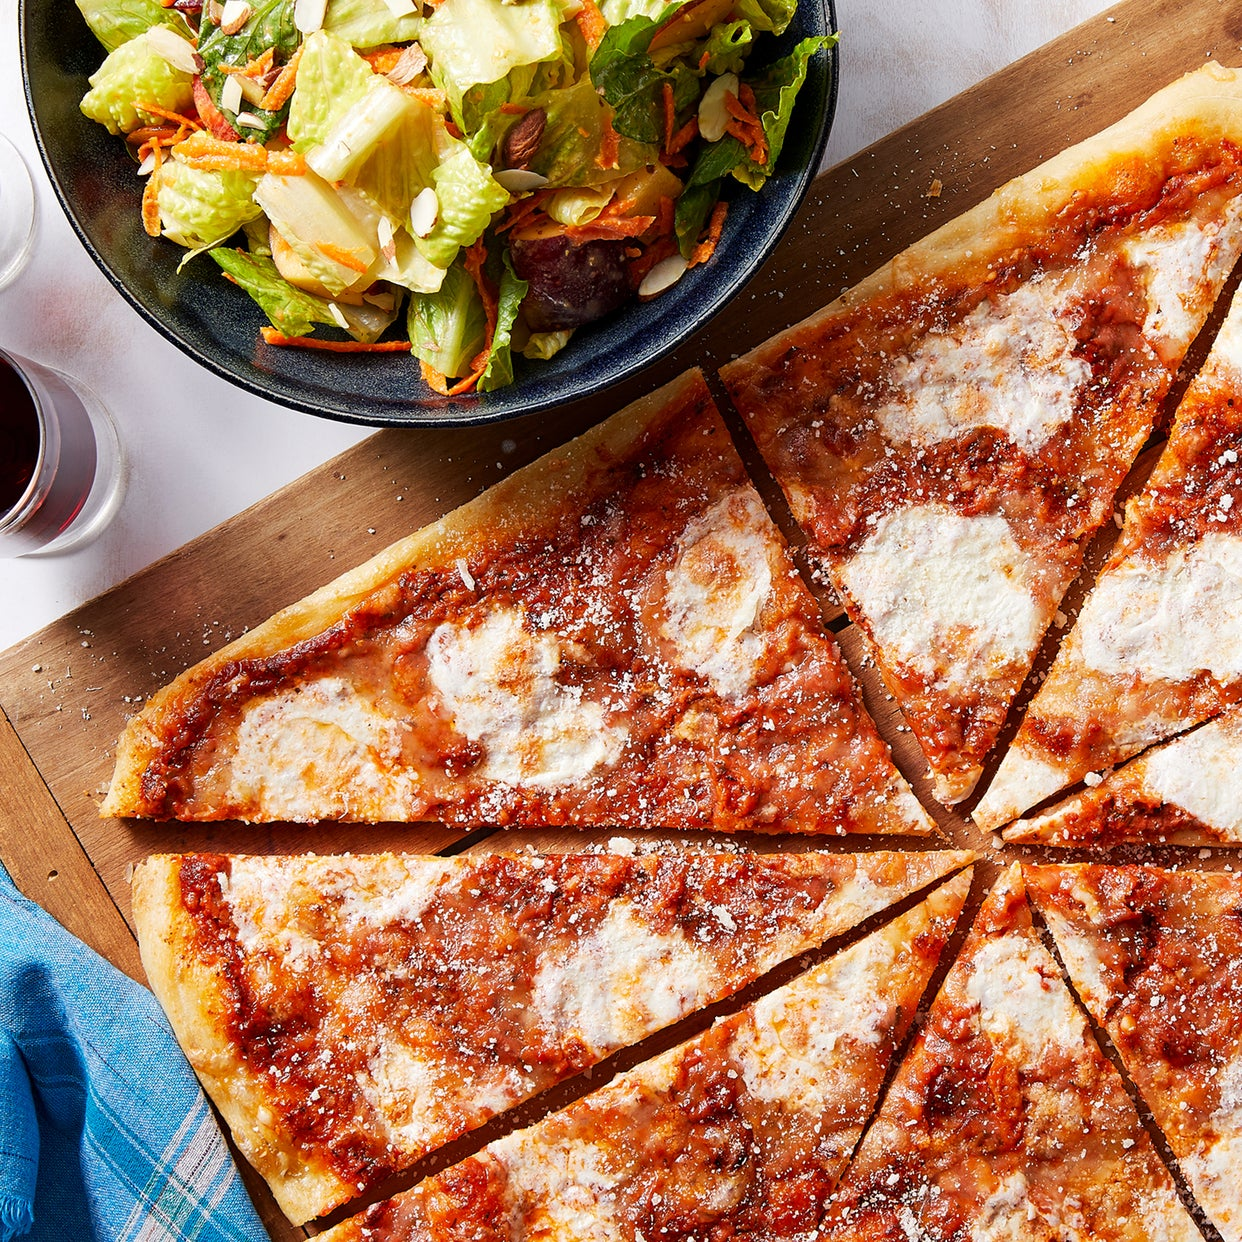 Three-Cheese Pizza with Creamy Tomato Sauce & Romaine Salad